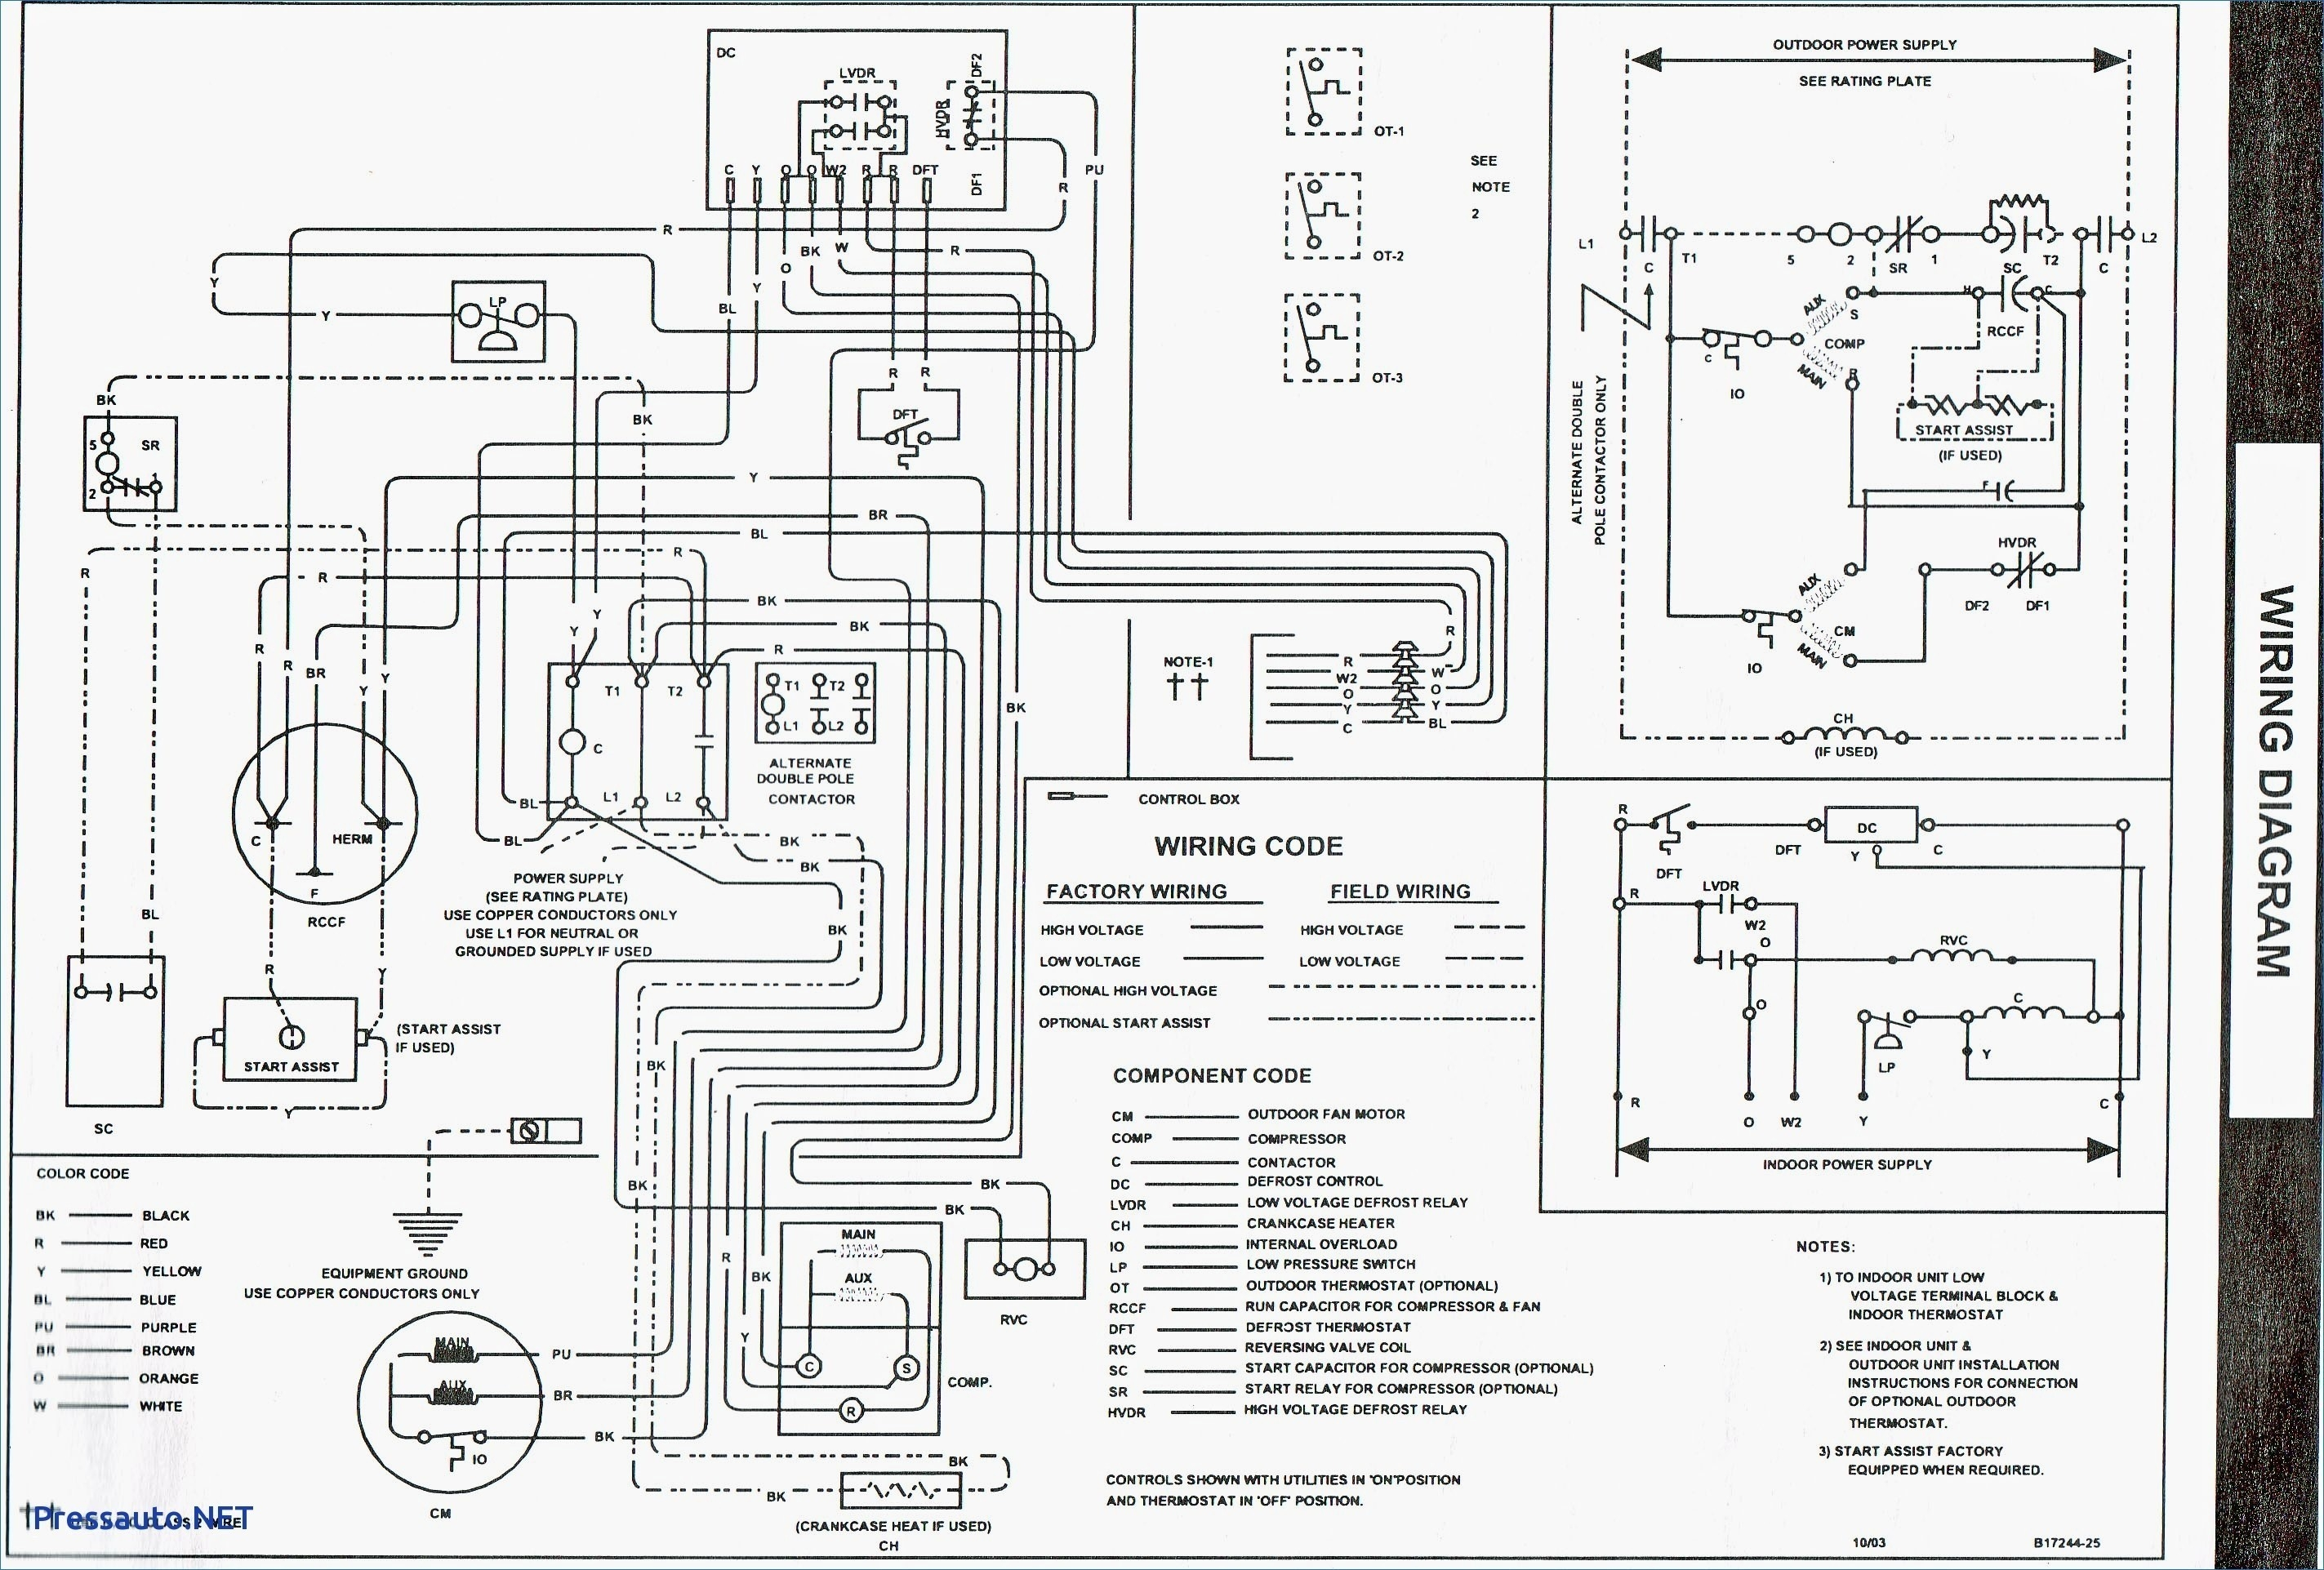 goodman gas furnace wiring diagram | free wiring diagram 1990 ezgo gas wiring diagram gas wiring diagram